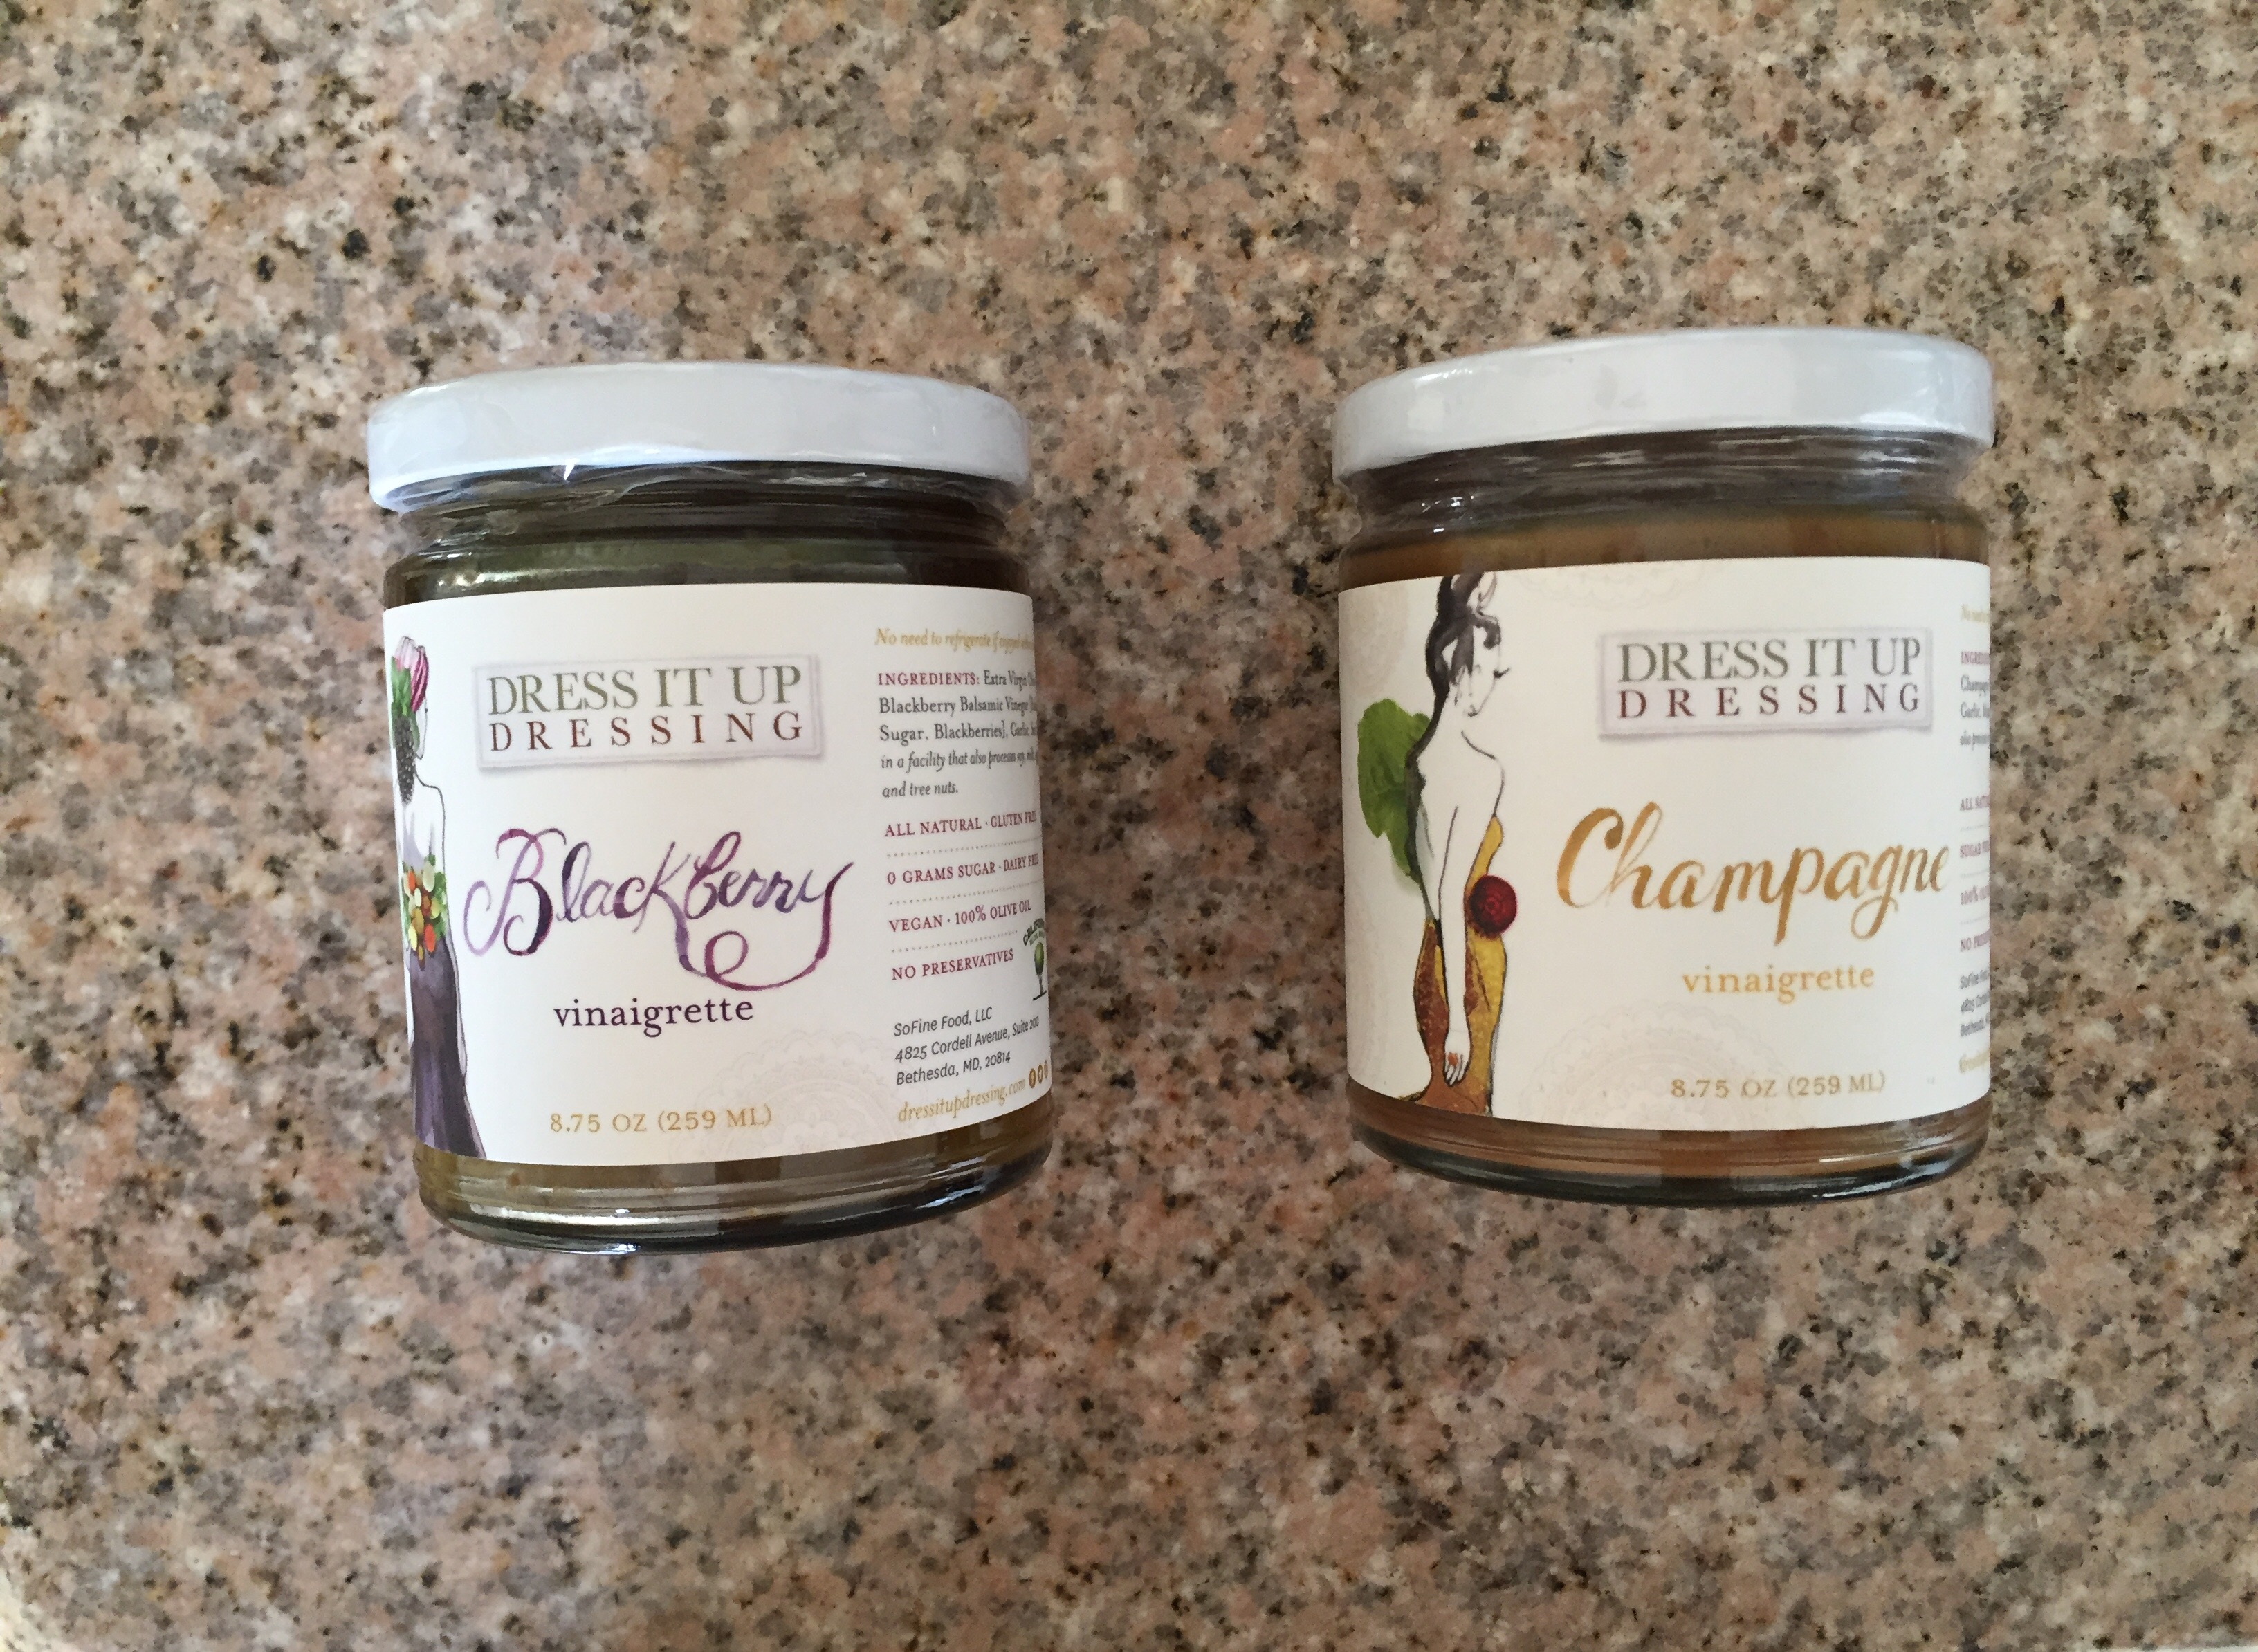 Champagne Dressing - Hamptons to Hollywood